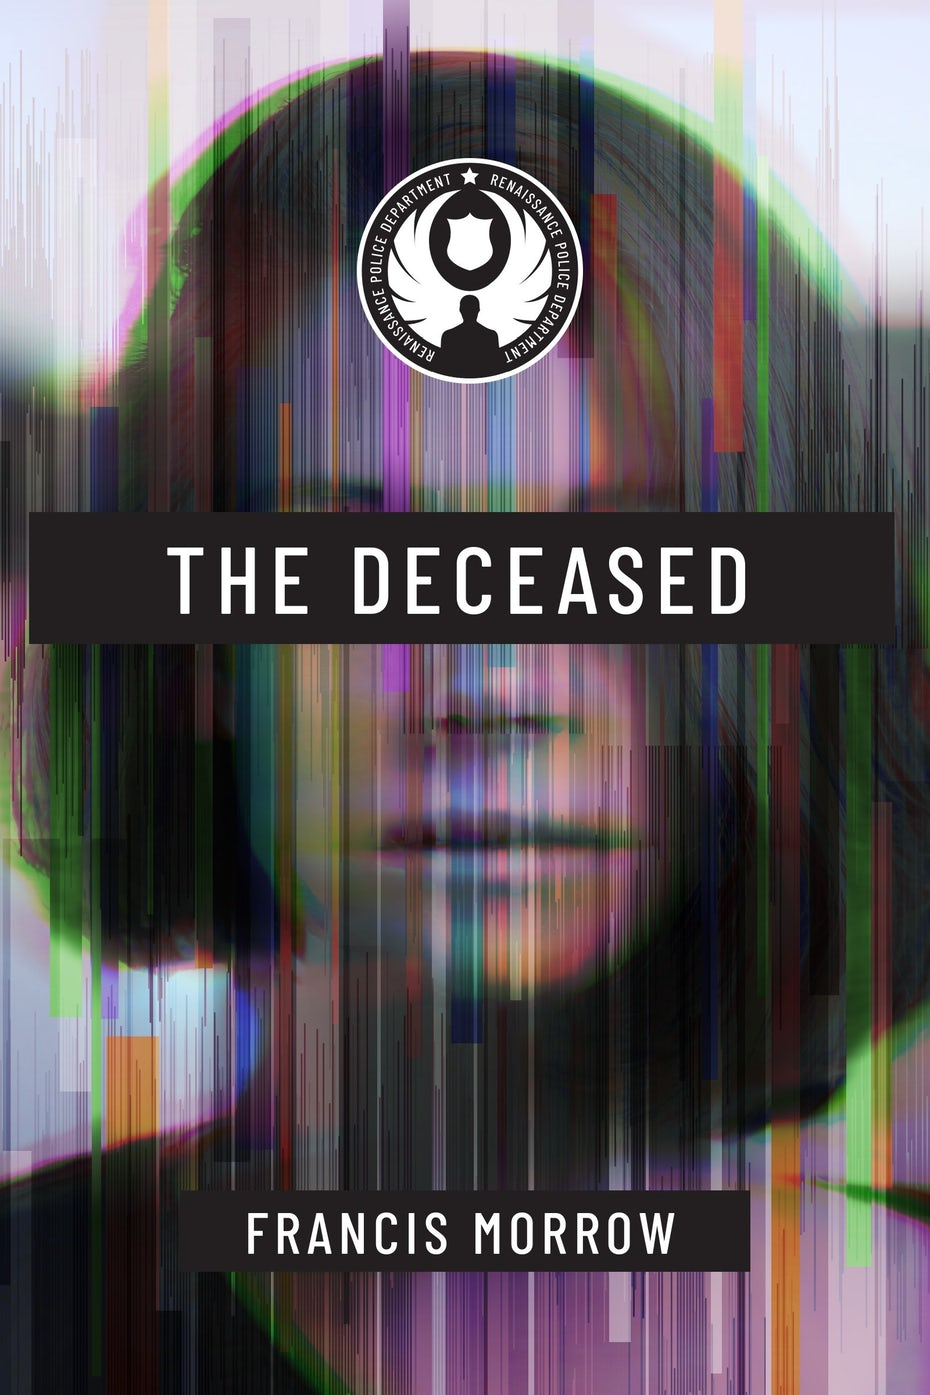 blurry book cover trends example: glitch art design in mostly shades of purple, showing a woman's face